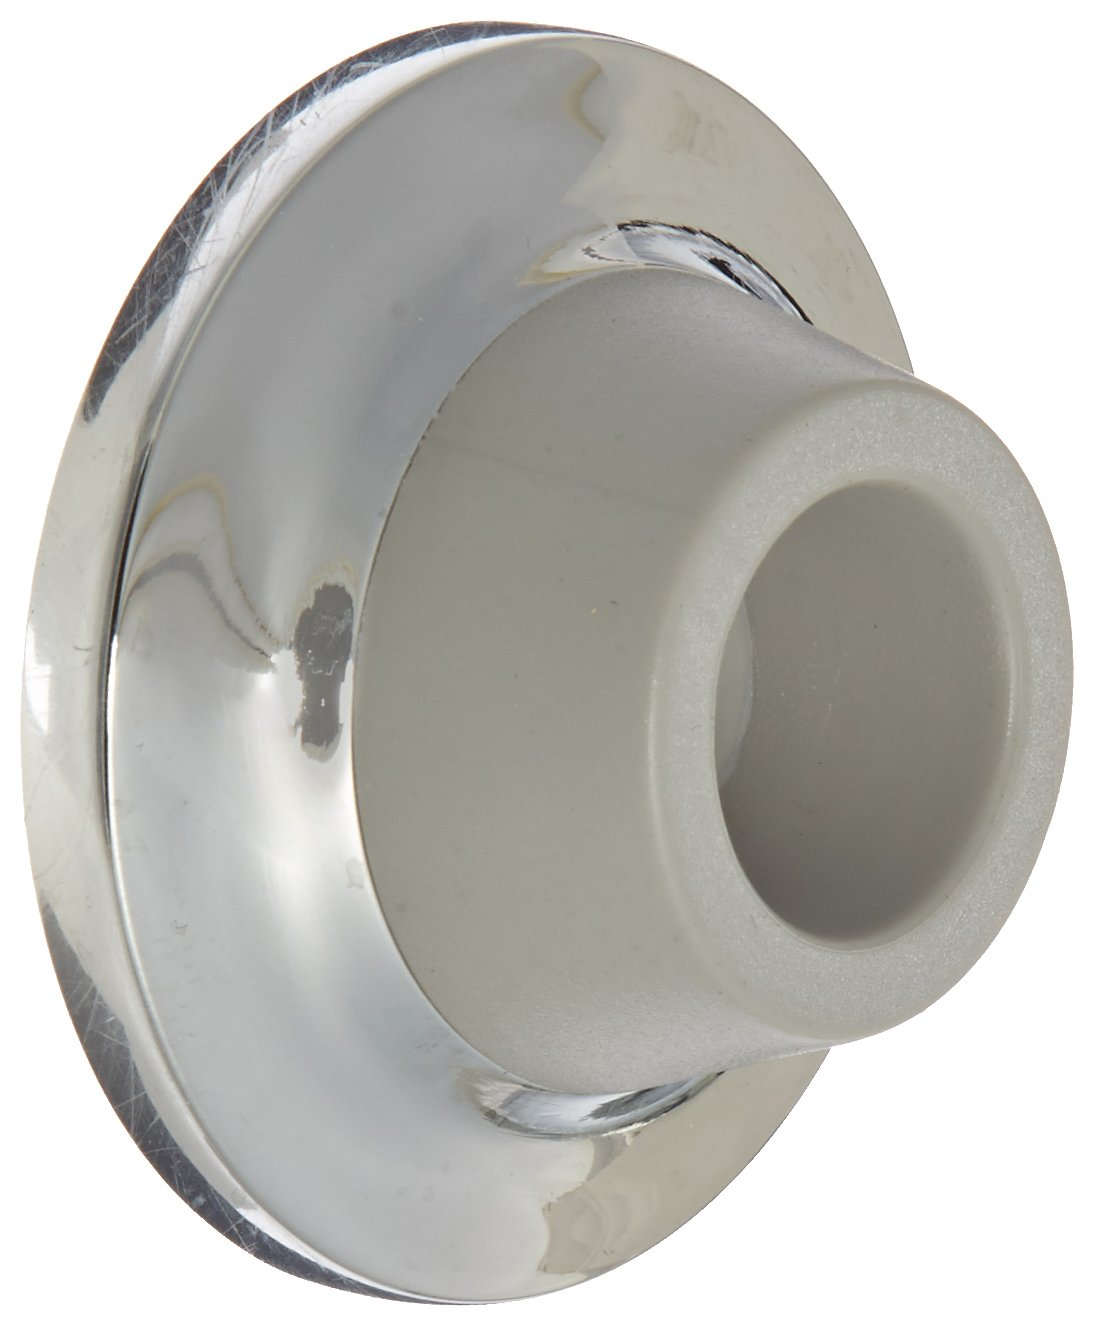 6 x 1-1//2 FH SMS Fastener with Plastic Toggle Rockwood 403.26 Brass Concave Solid Cast Wall Stop 2-7//16 Diameter Polished Chrome Plated Finish 6 x 1-1//2 FH SMS Fastener with Plastic Toggle 2-7//16 Diameter Rockwood Manufacturing Company